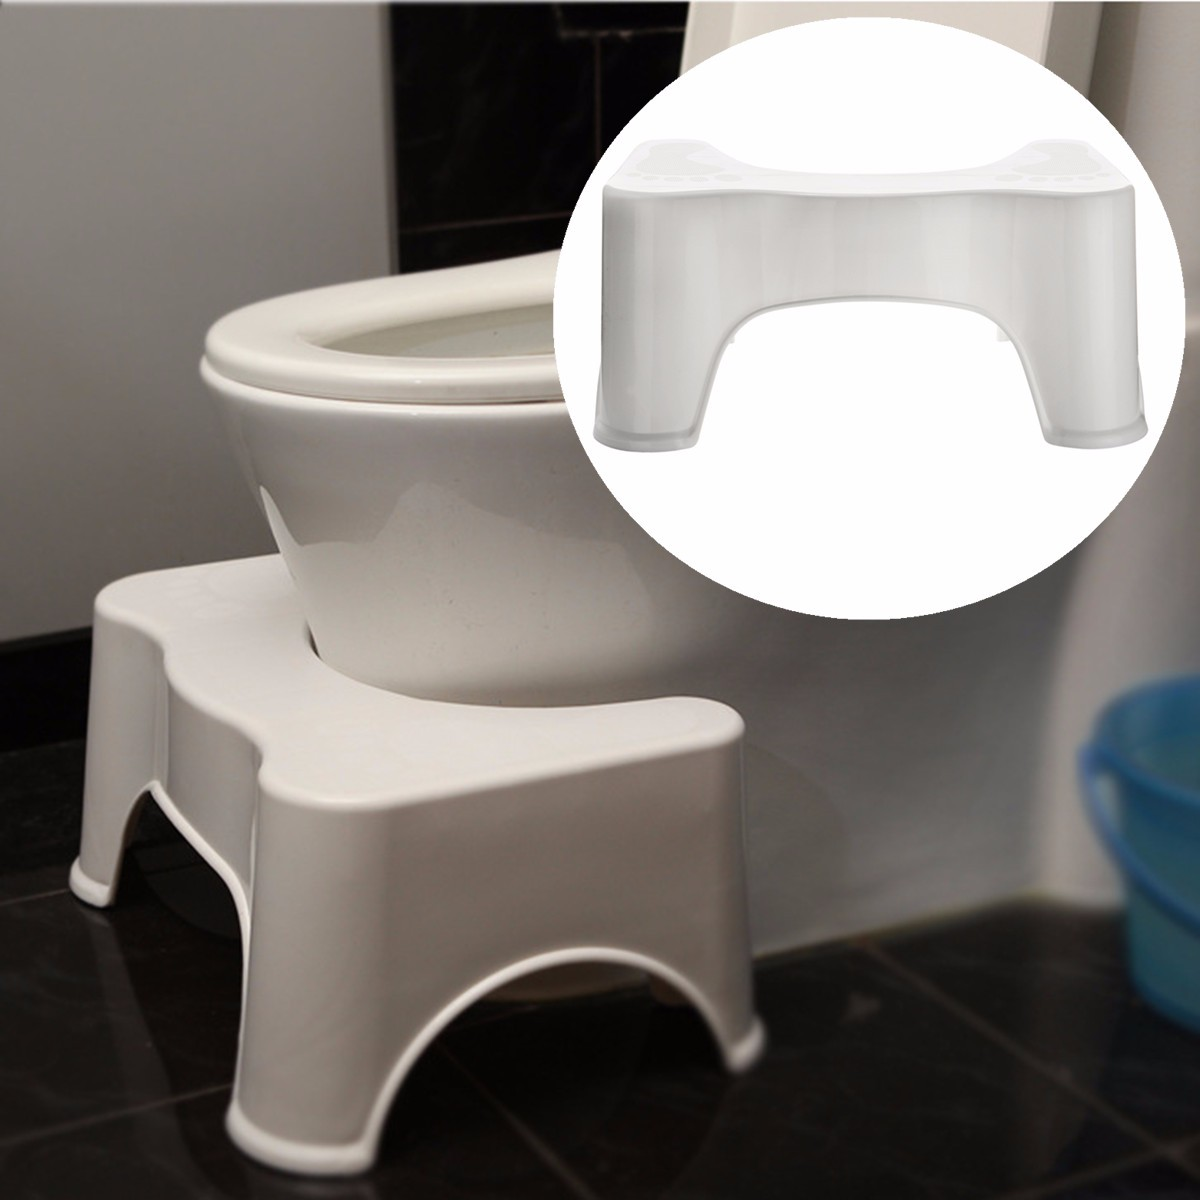 Wc Hocker 9 Toilette Toilettenhocker Tritthocker Schemel Wc Hocker Toilet Stool De